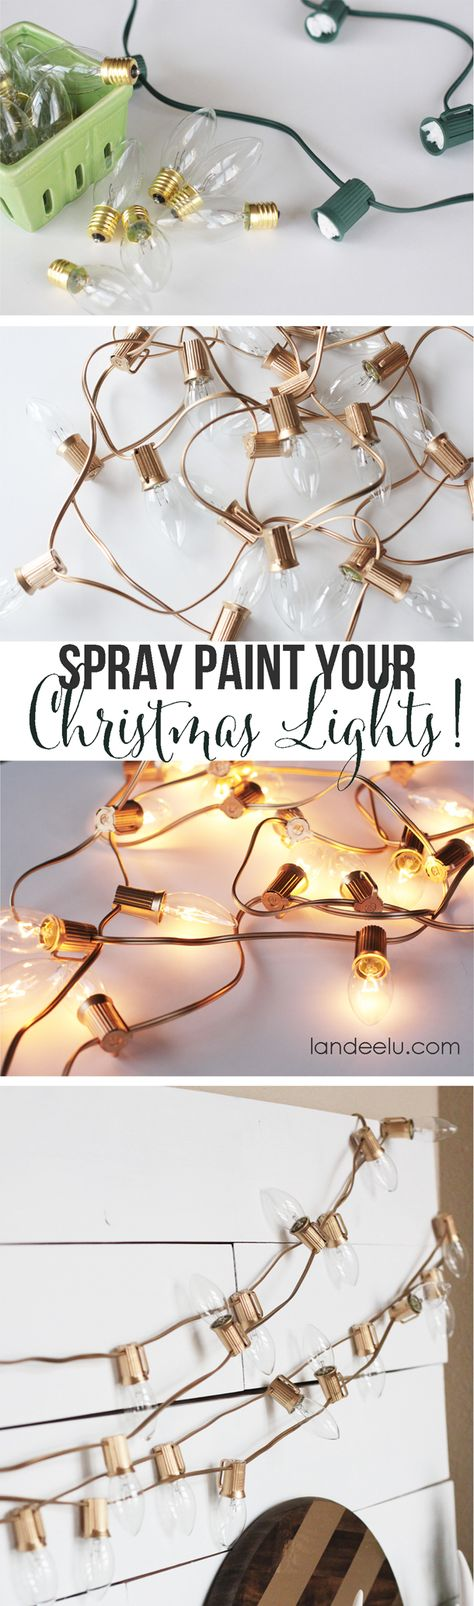 Spray Paint Your Christmas Lights! Who would have thought! | landeelu.com